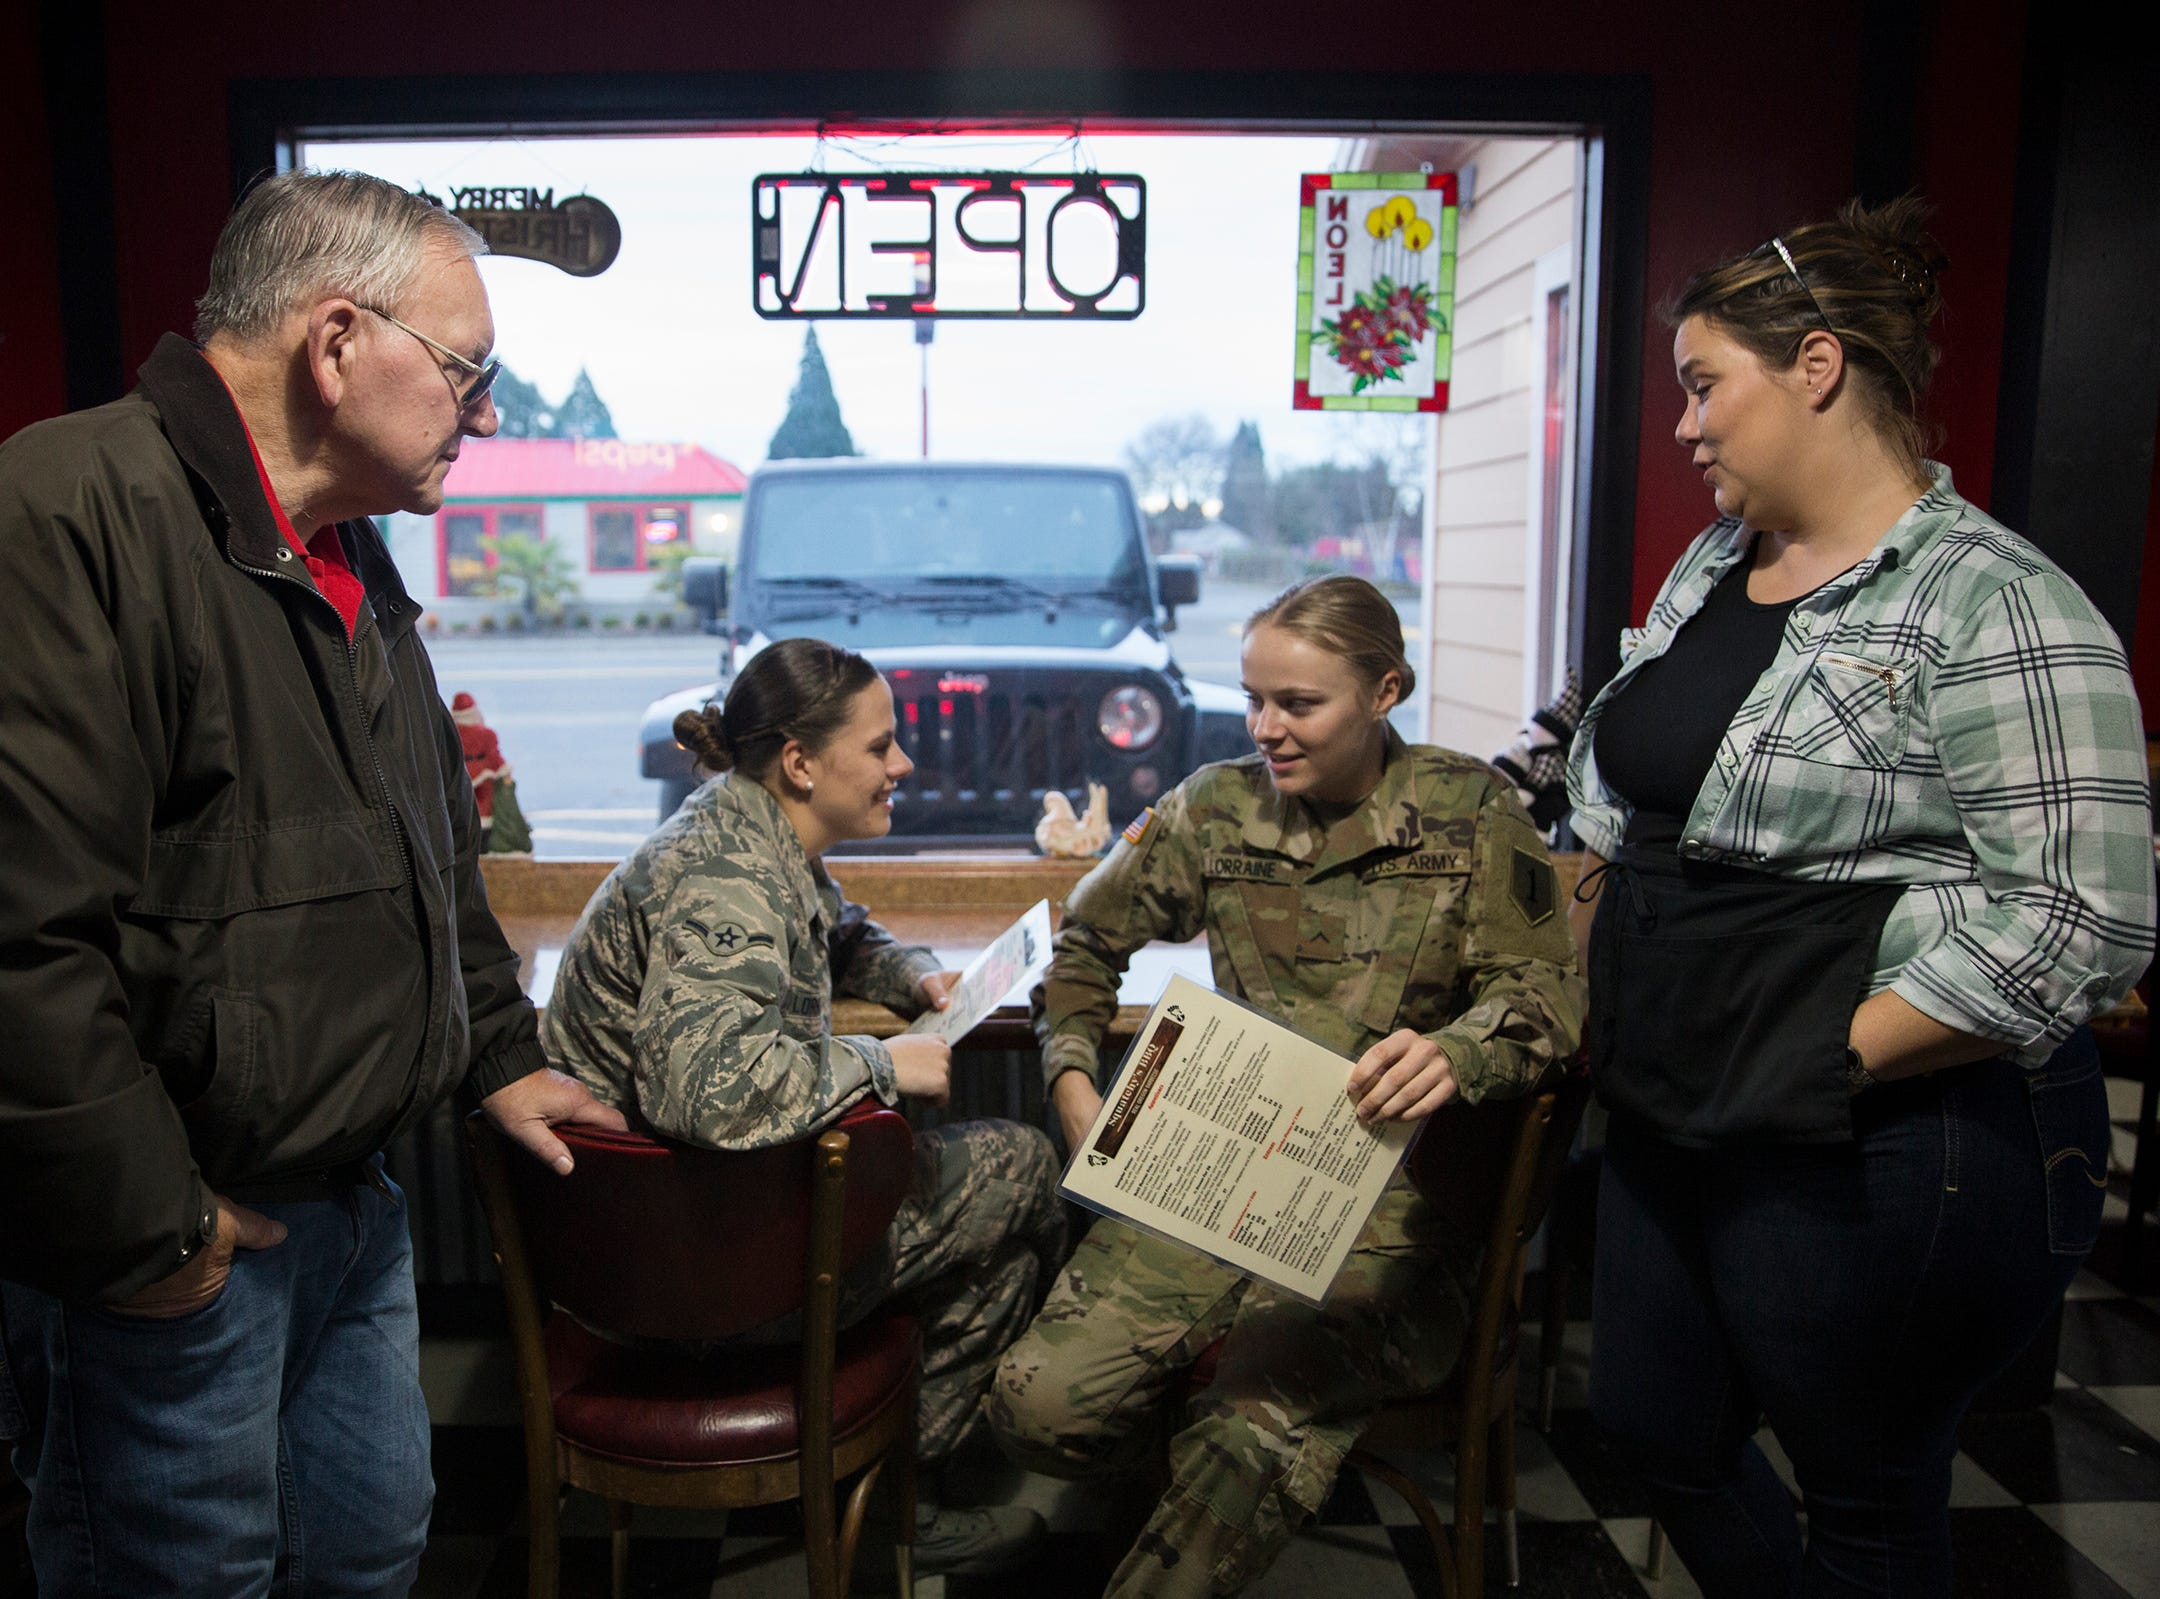 Military sisters Kelsey Lorraine and Courtney Lorraine talk to their mom Julie and grandfather Jerry after Courtney surprised them at their family restaurant Squatchy's BBQ in Stayton on Saturday, Dec. 22, 2018.